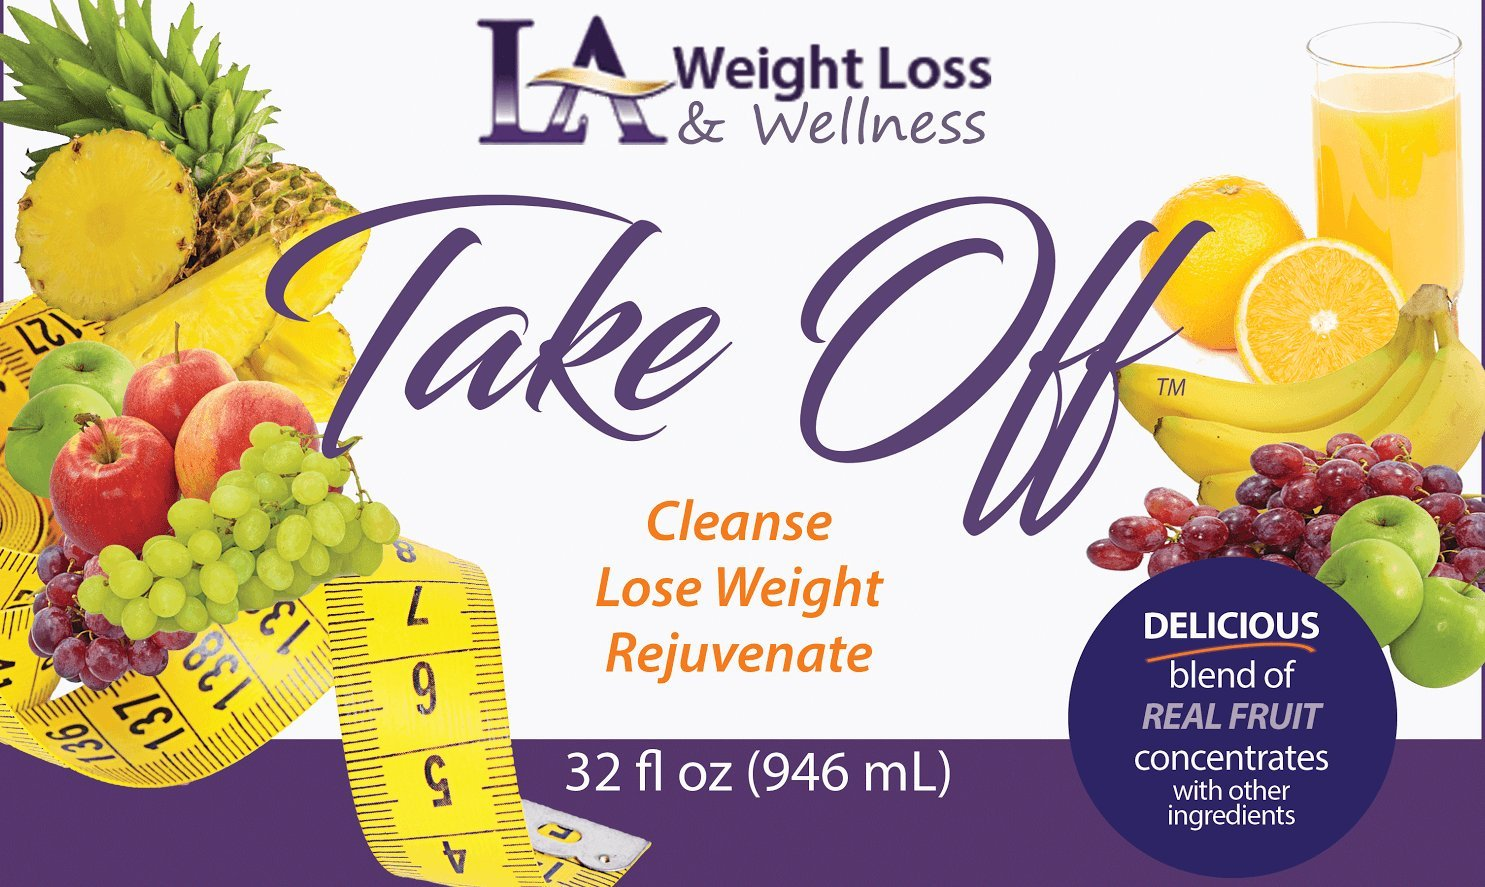 LA Weight Loss Takeoff Juice - Slim, Detox & Cleanse in Just 2 Days! by L A Weight Loss & Wellness